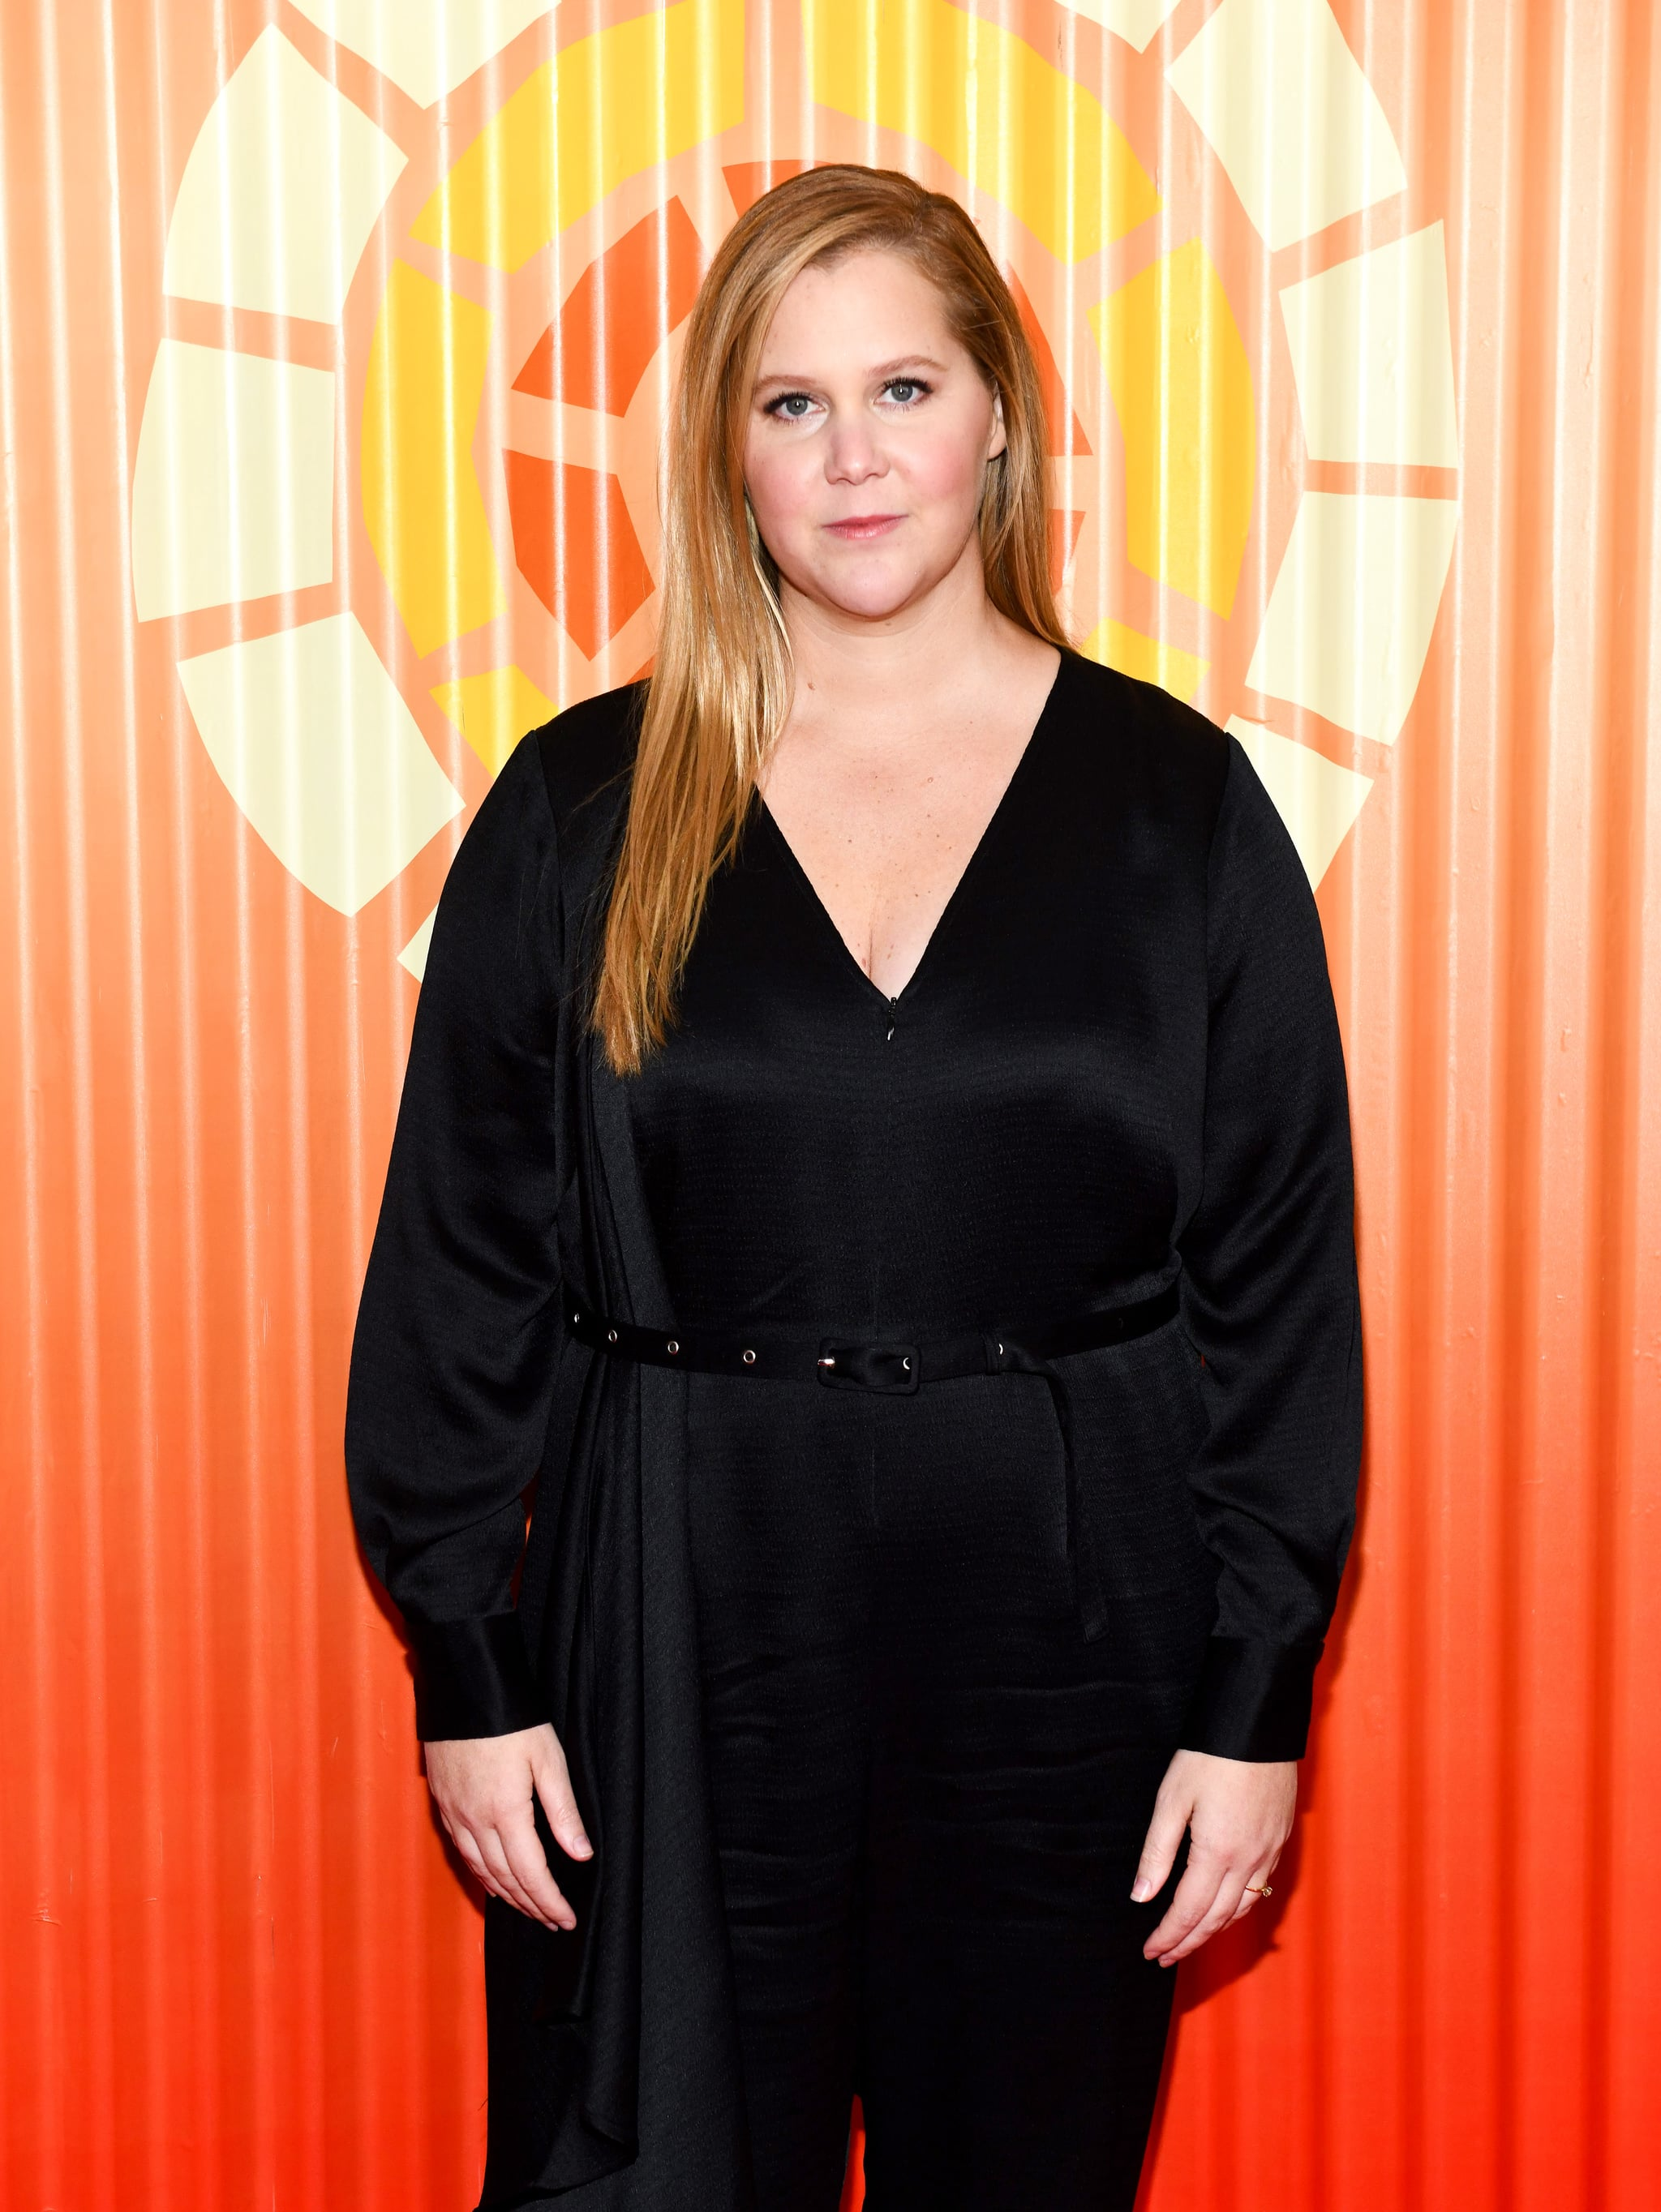 NEW YORK, NEW YORK - NOVEMBER 12: Amy Schumer attends Charlize Theron's Africa Outreach Project Fundraiser at The Africa Center on November 12, 2019 in New York City. (Photo by Noam Galai/WireImage)